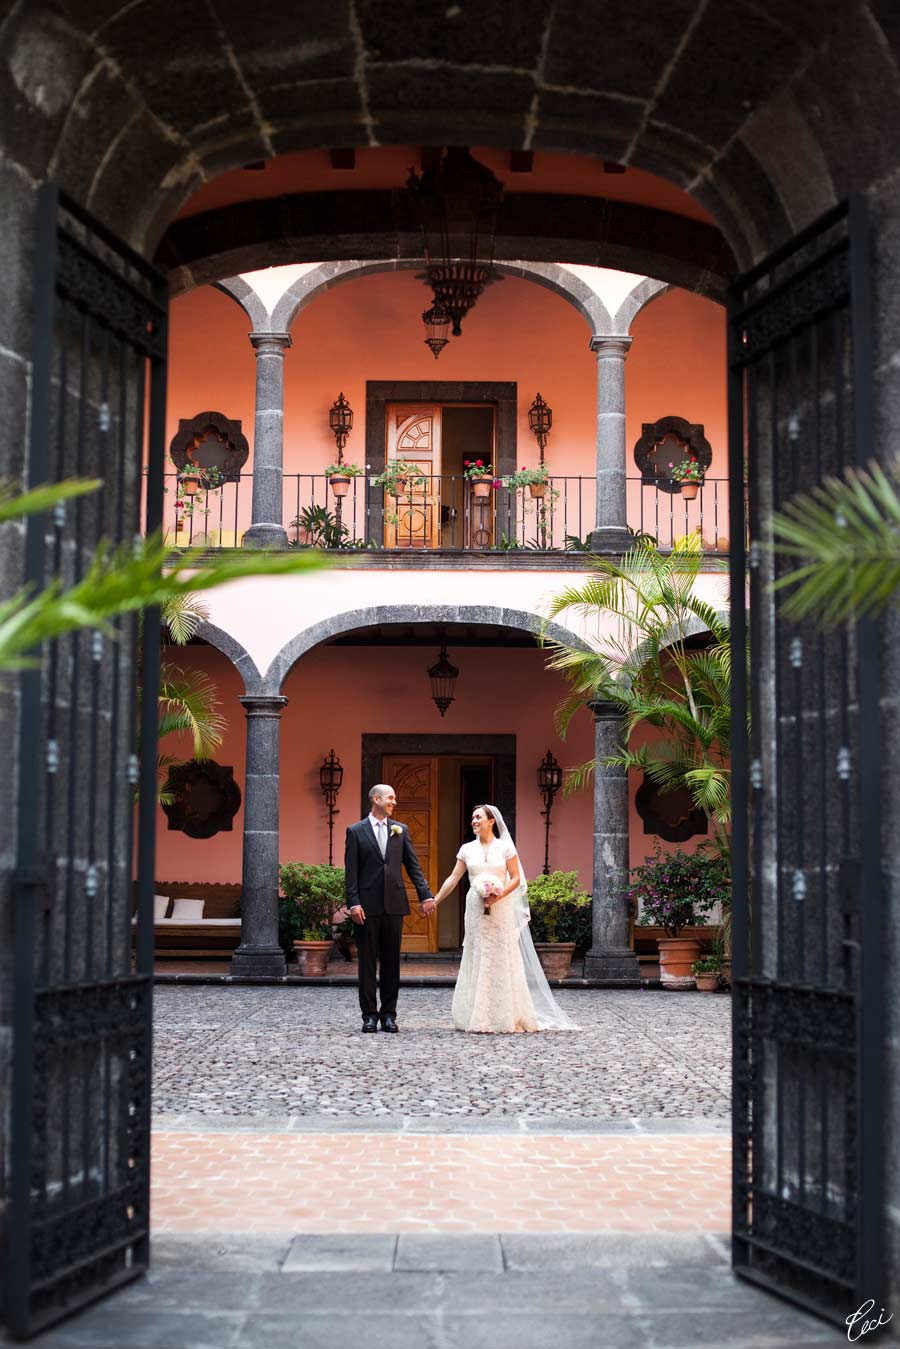 Our Muse - Elegant Mexican Wedding - Be inspired by Xochitl and Mark's elegant Mexican wedding- wedding, invitations